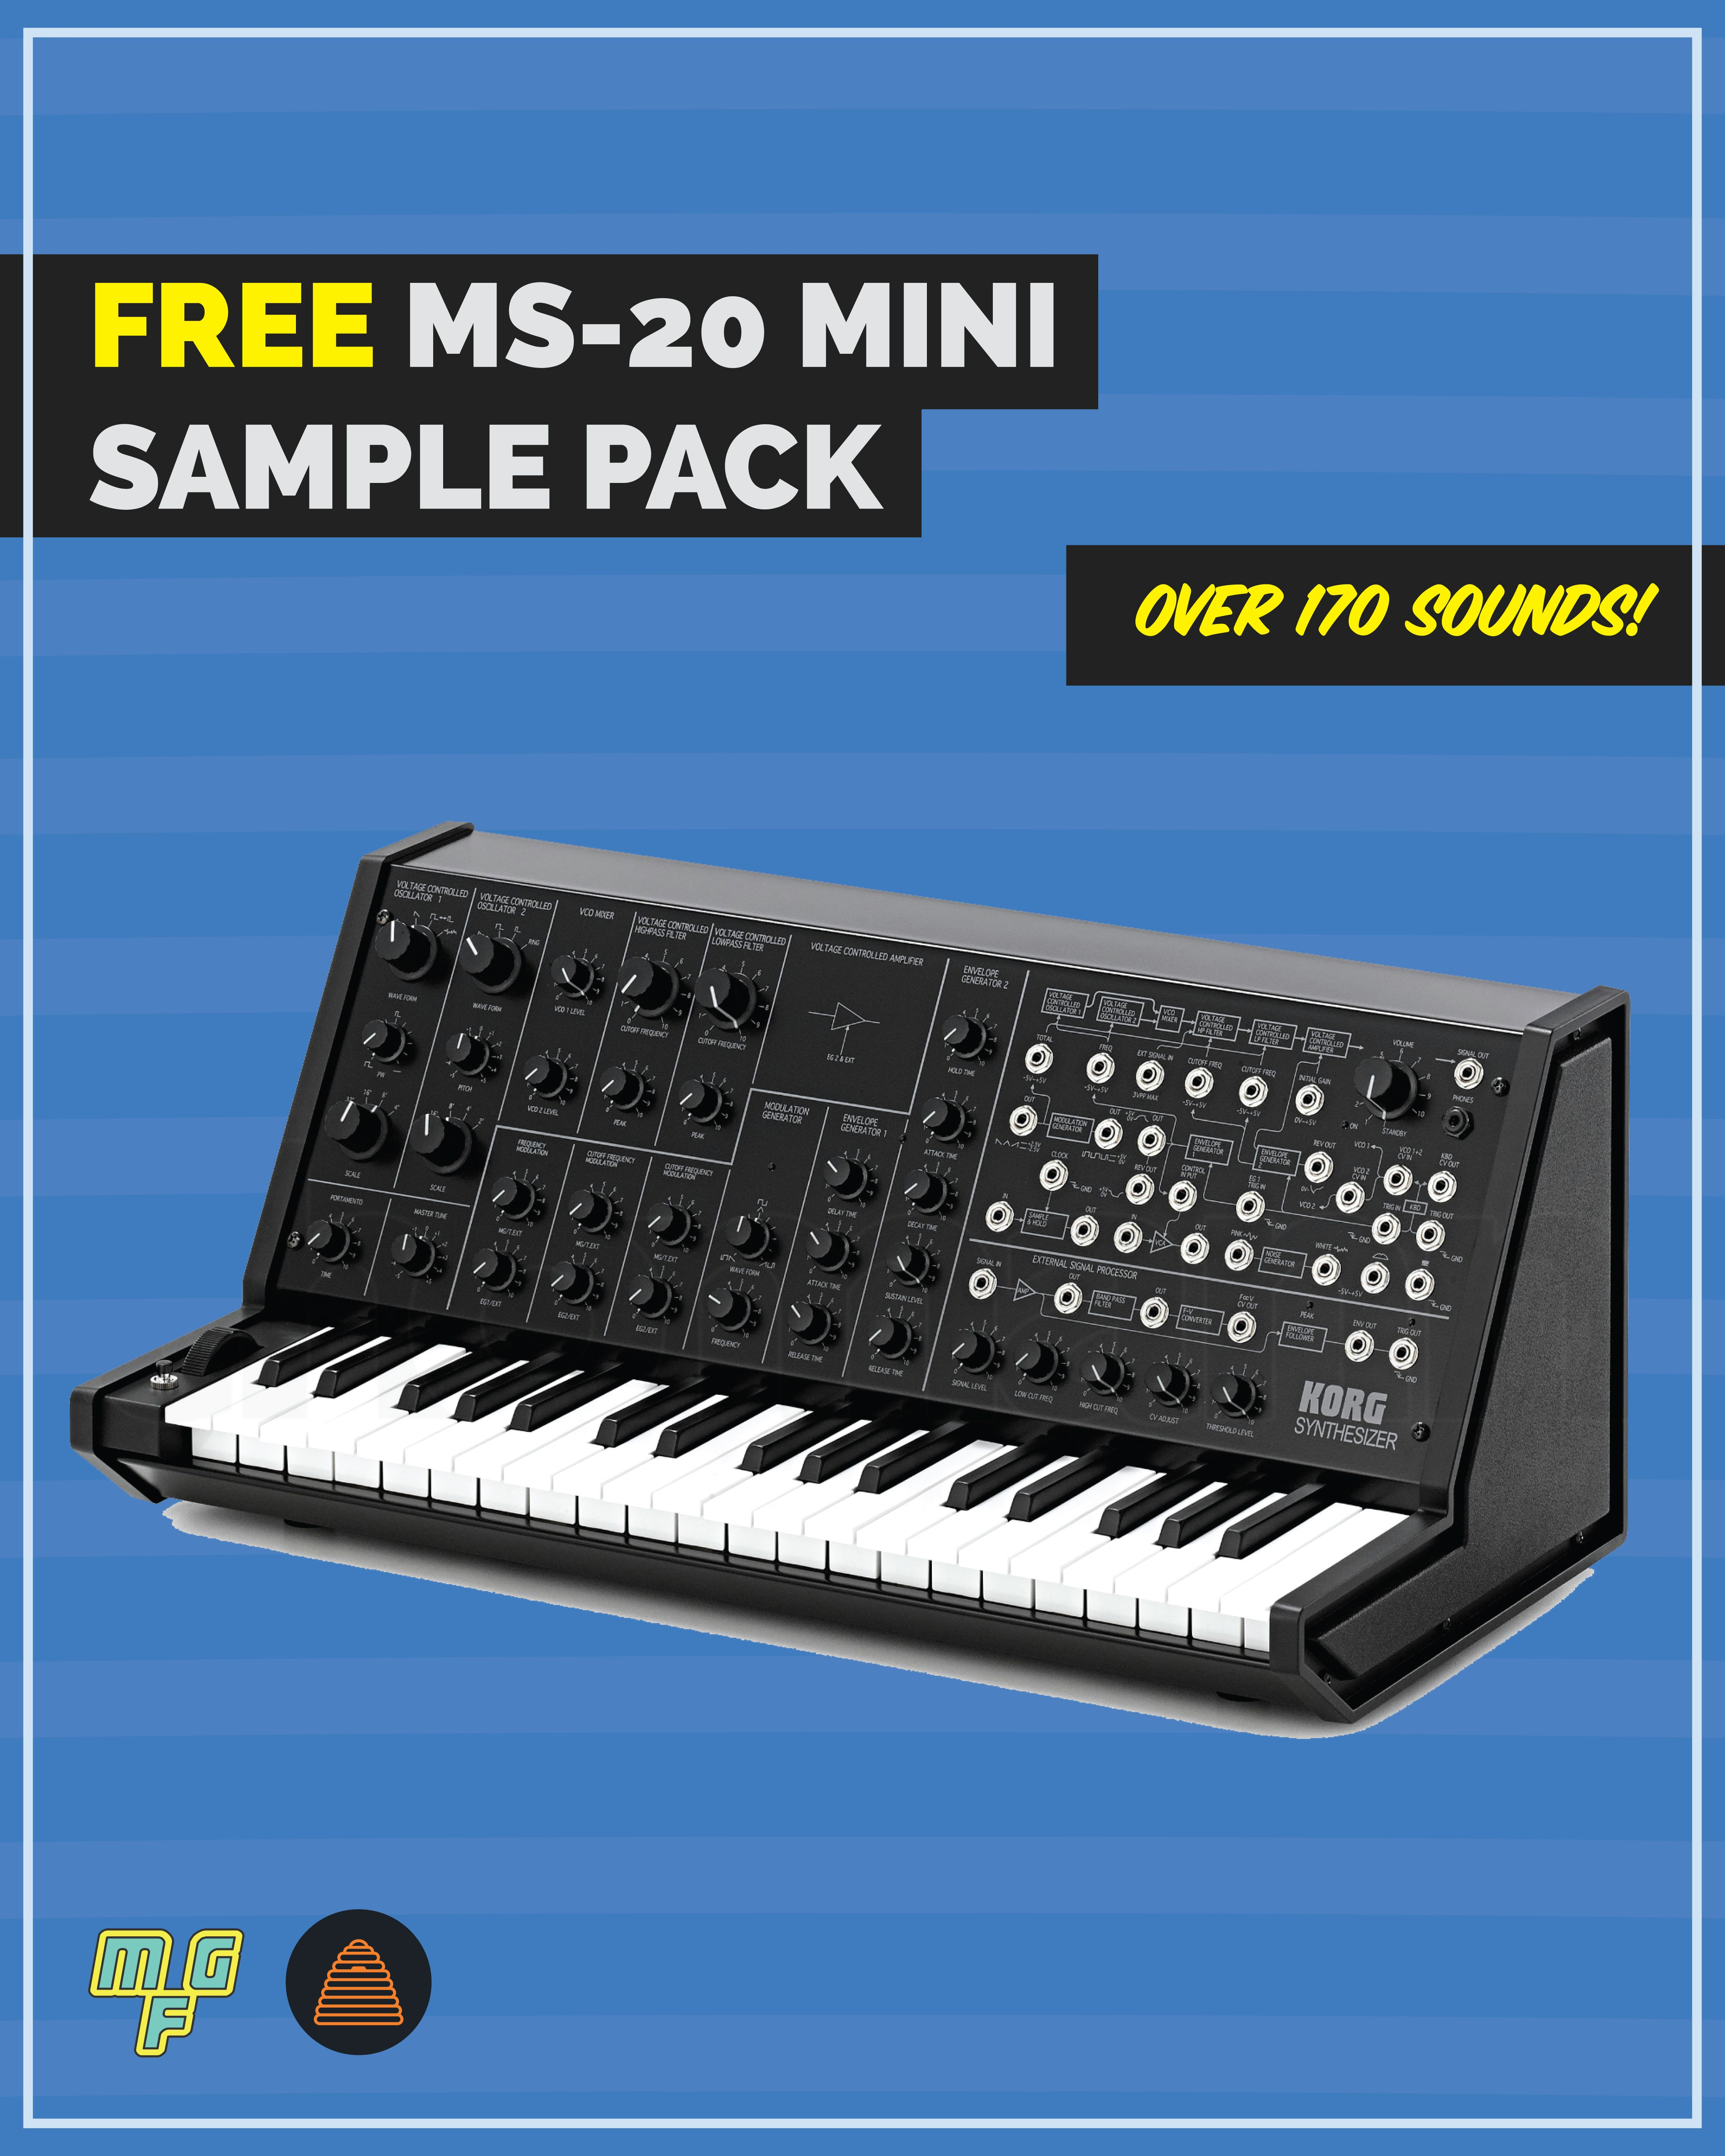 8 Free Sample Pack Websites/Sources For Electronic Music